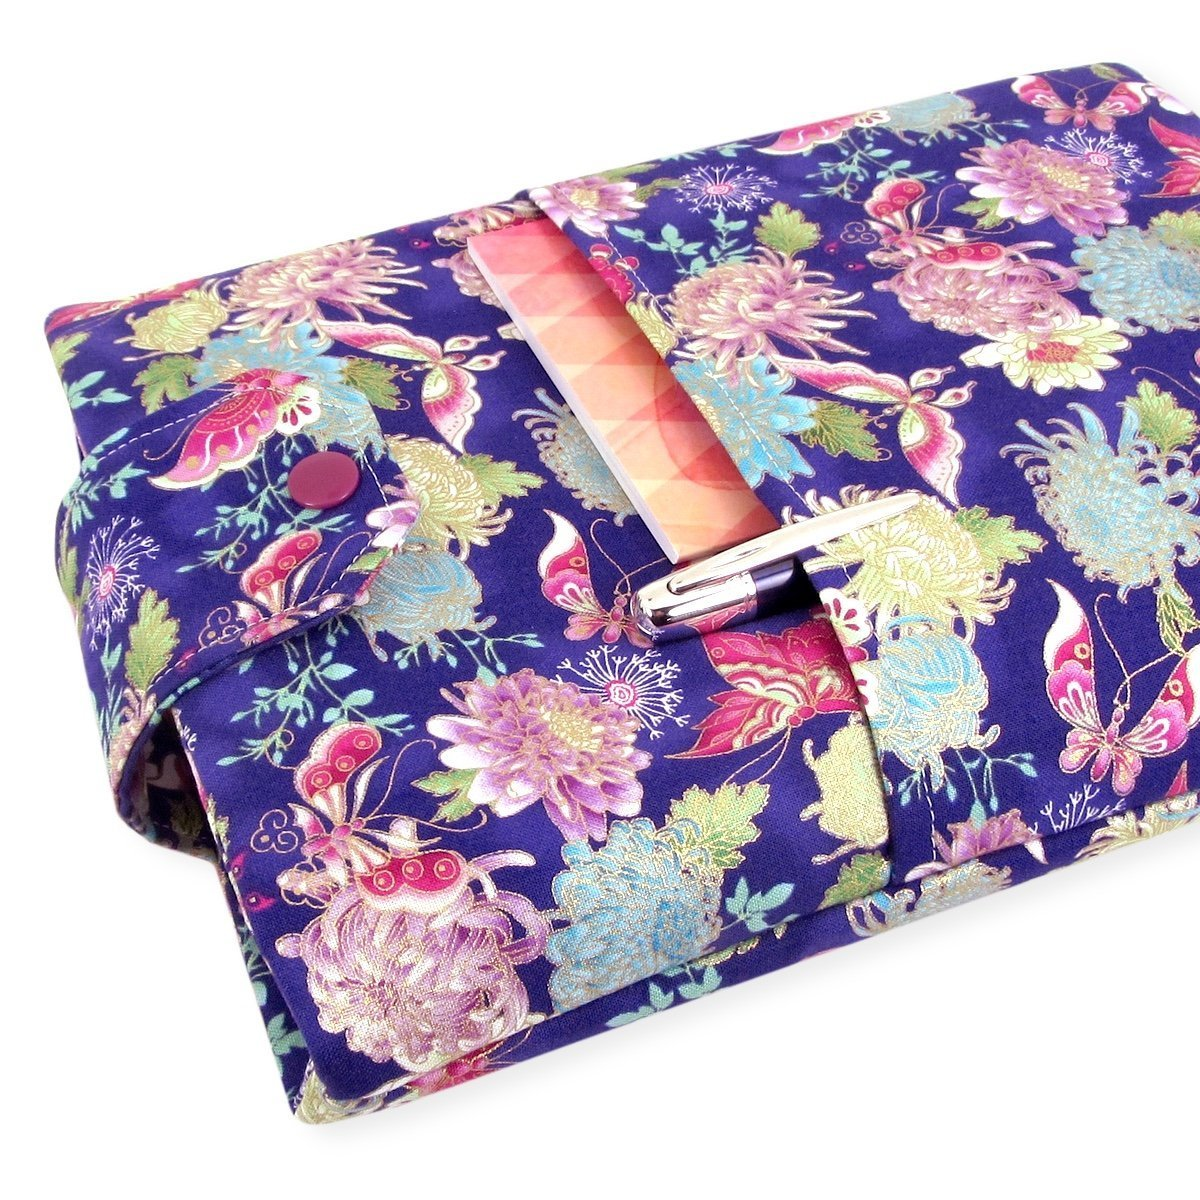 Handmade Fabric Book Sleeve - Perfect For Hardbacks Or Large Paperbacks - Padded, Purple Japanese Butterfly Fabric